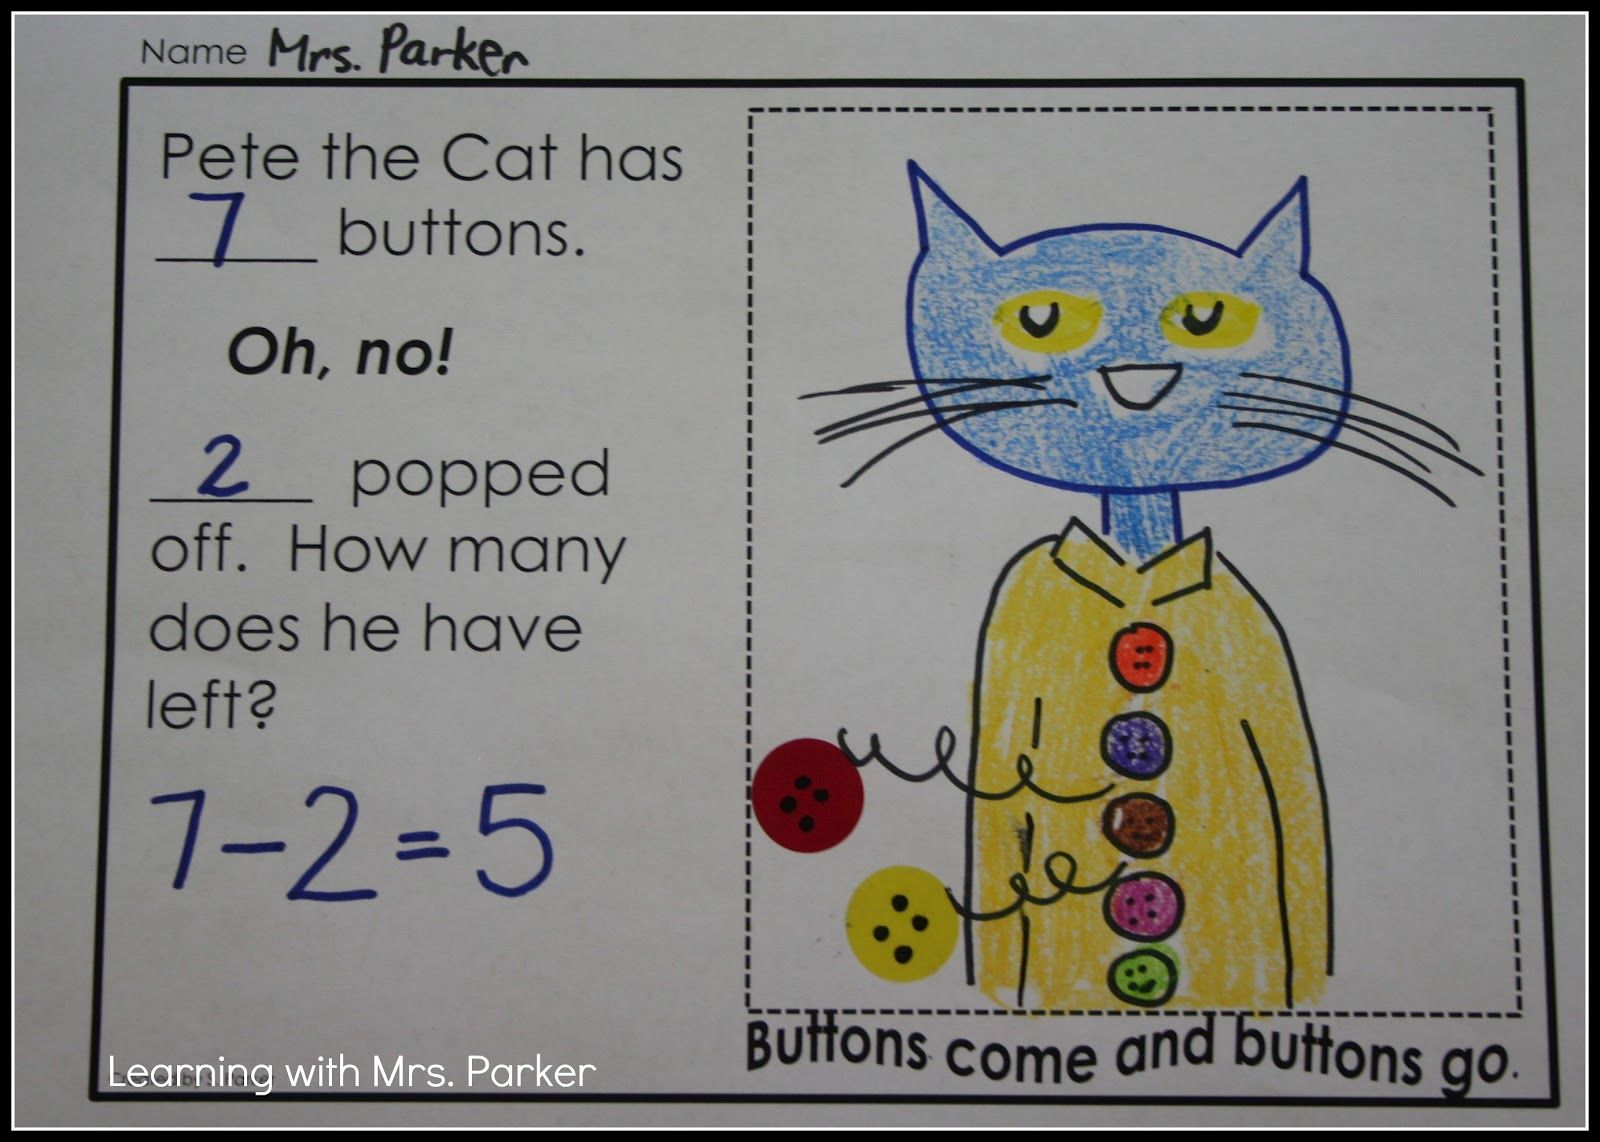 Worksheets On The Button Math Worksheet pete the cat subtraction freebie learning with mrs parker app